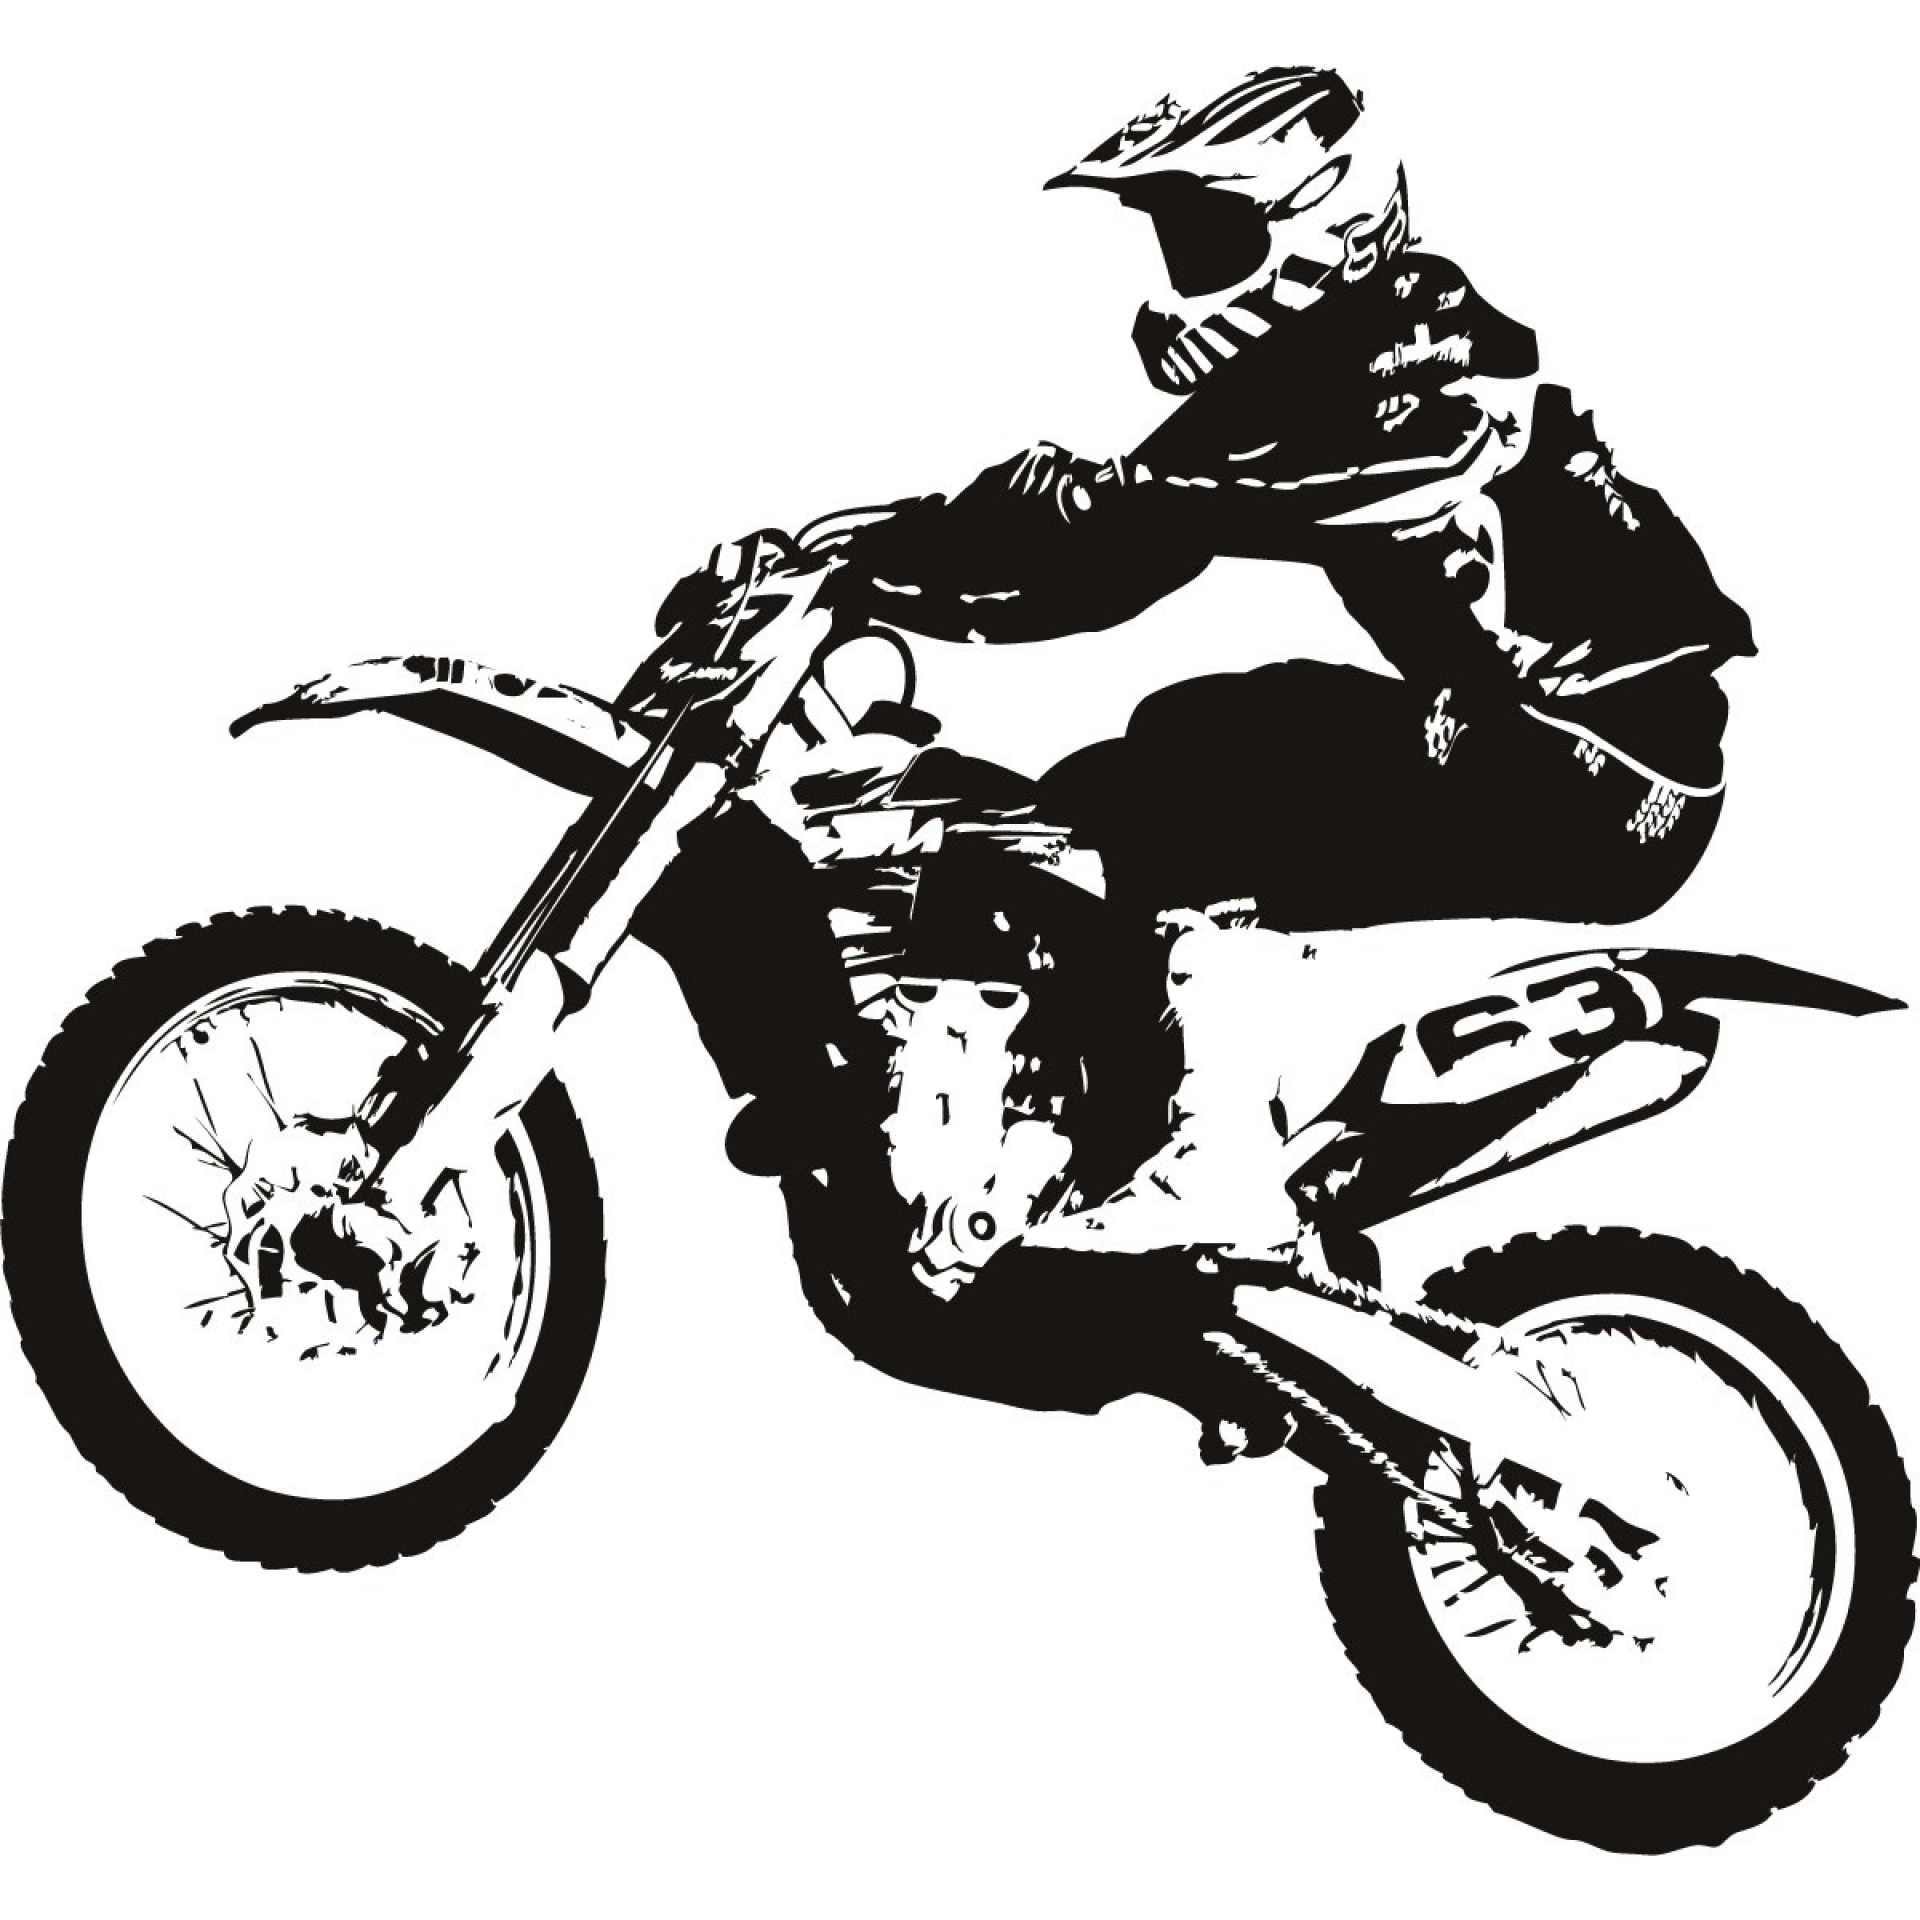 Download this Cool Dirt Bikes